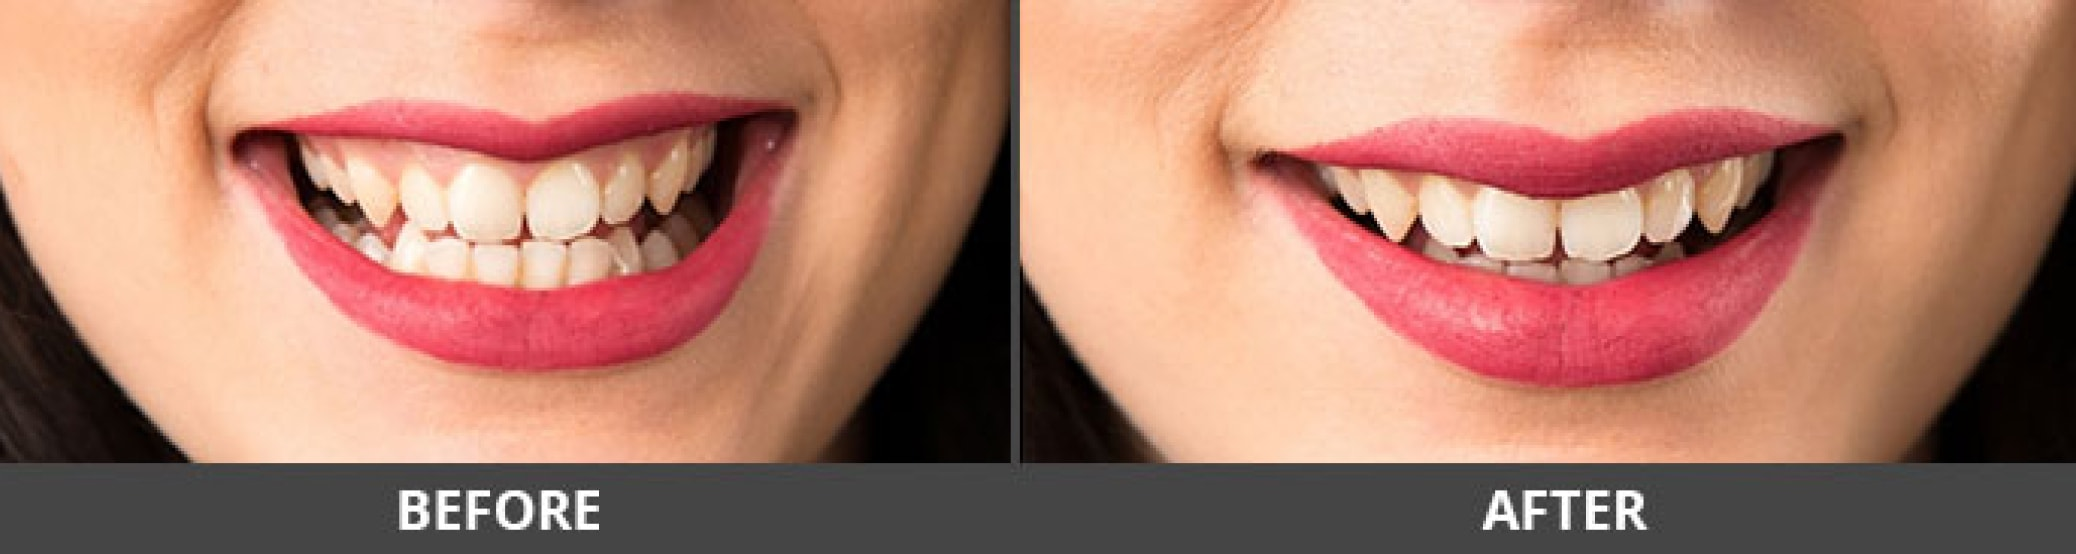 Gummy smile treatment results